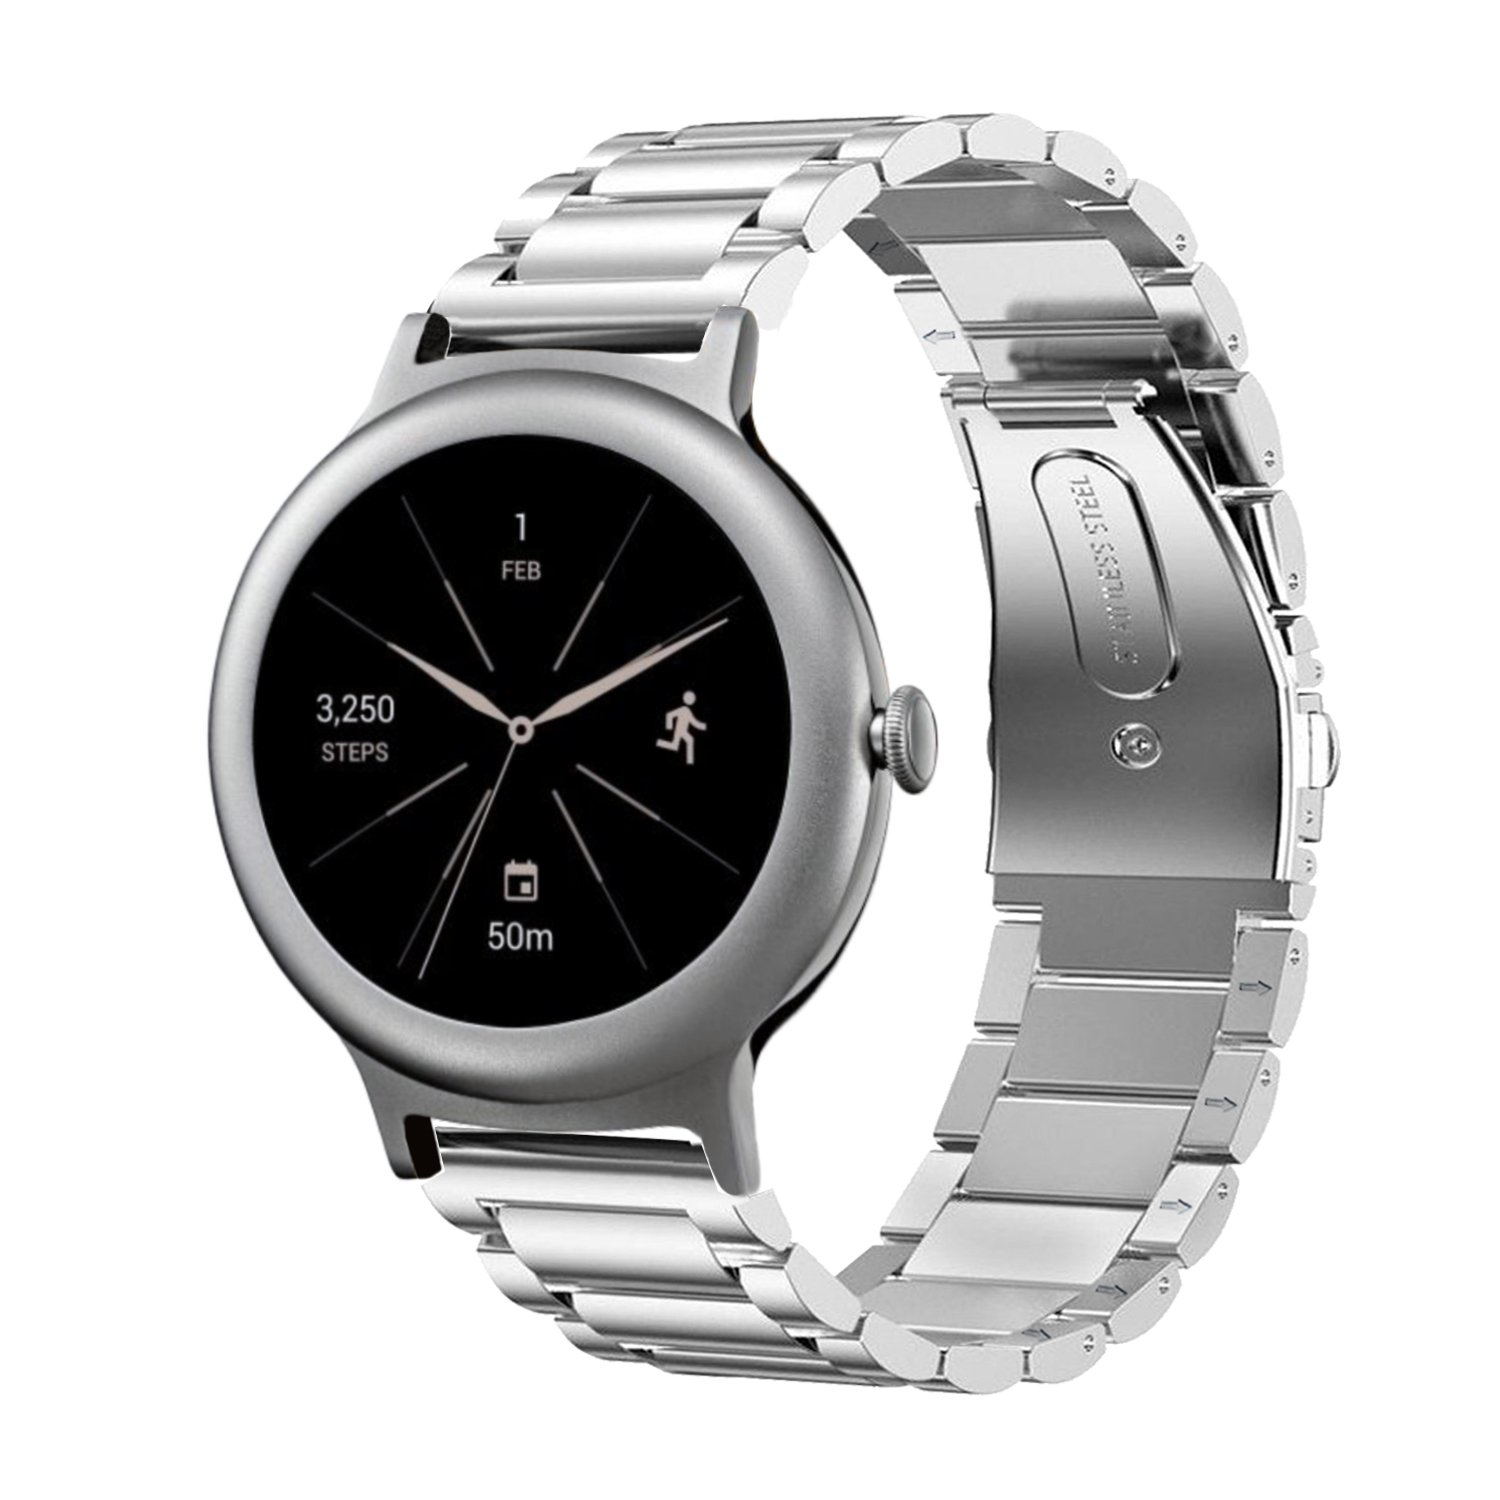 Oitom Premium Stainless Steel Watch Band Strap for LG WATCH STYLE Smart Fitness Watch(Silver)